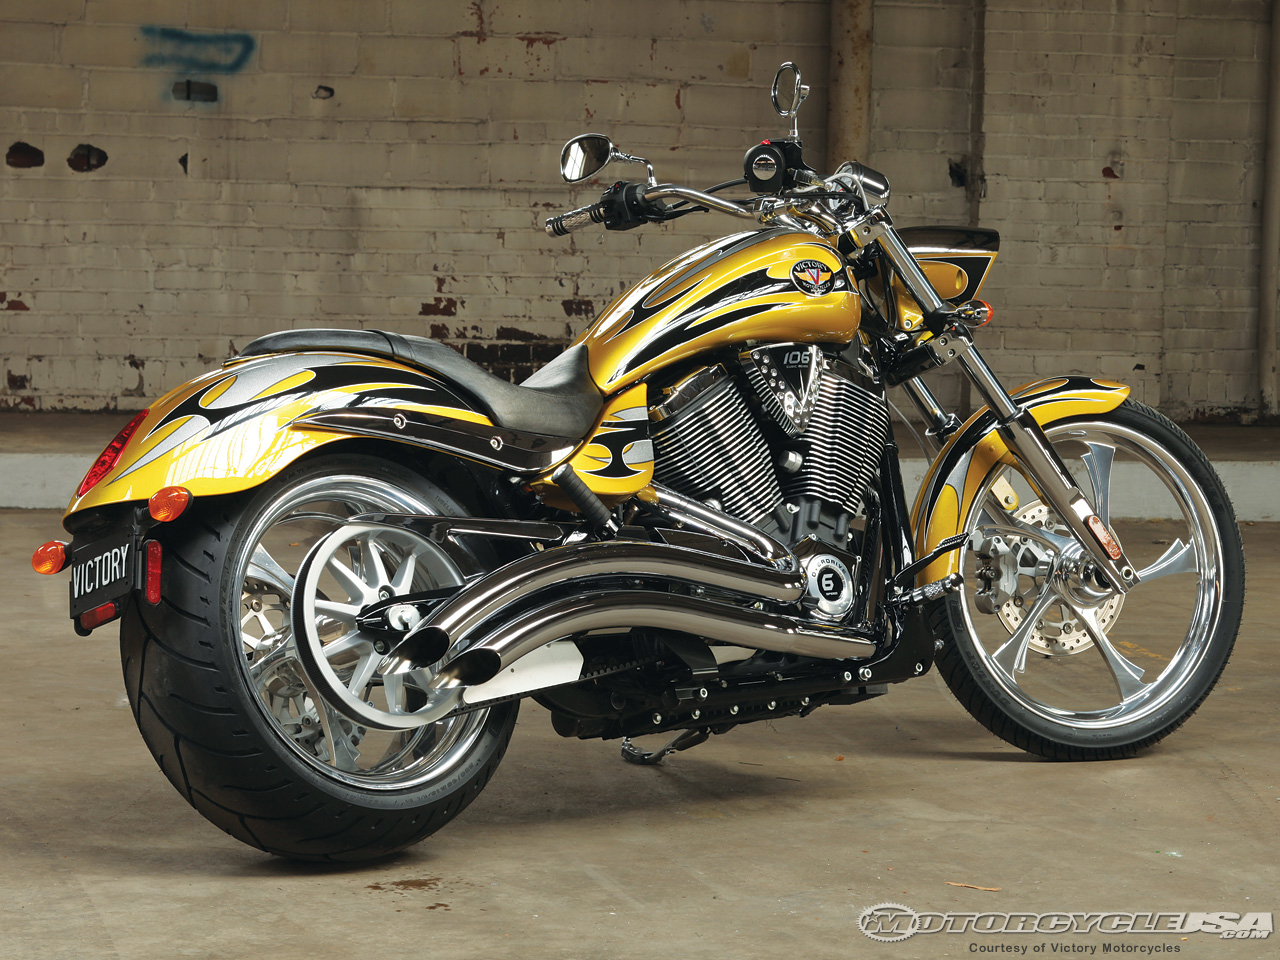 victory motorcycles bikes motorcycle custom jackpot vegas ideal choppers yellow usa engine